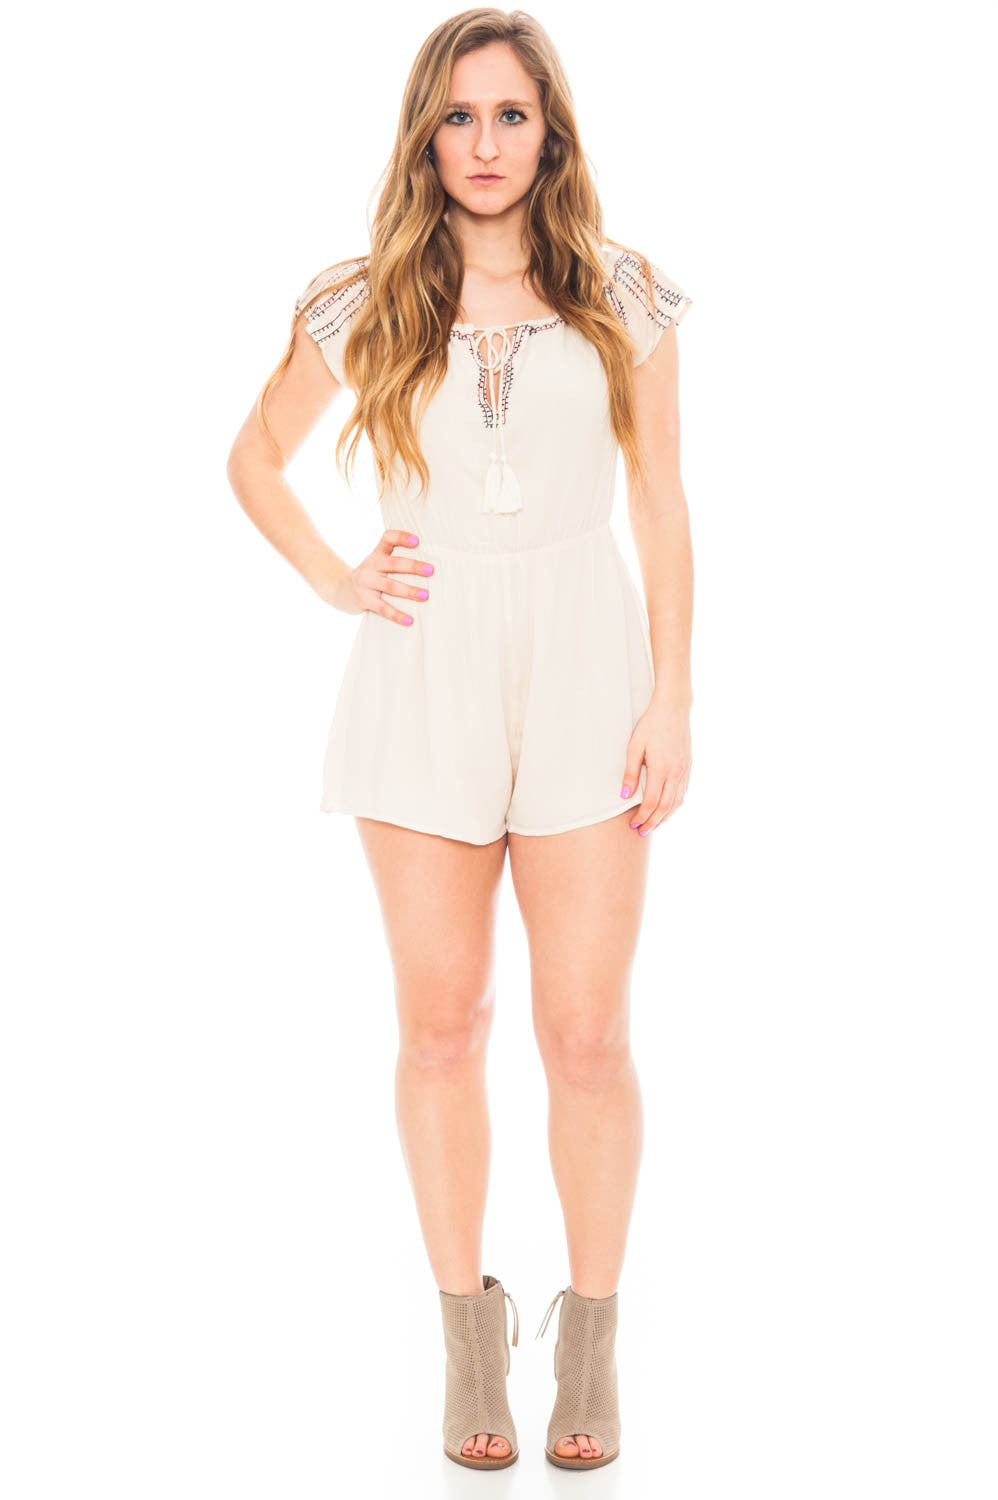 Dress - Off Shoulder Embroidered Romper with Tassels by Lush